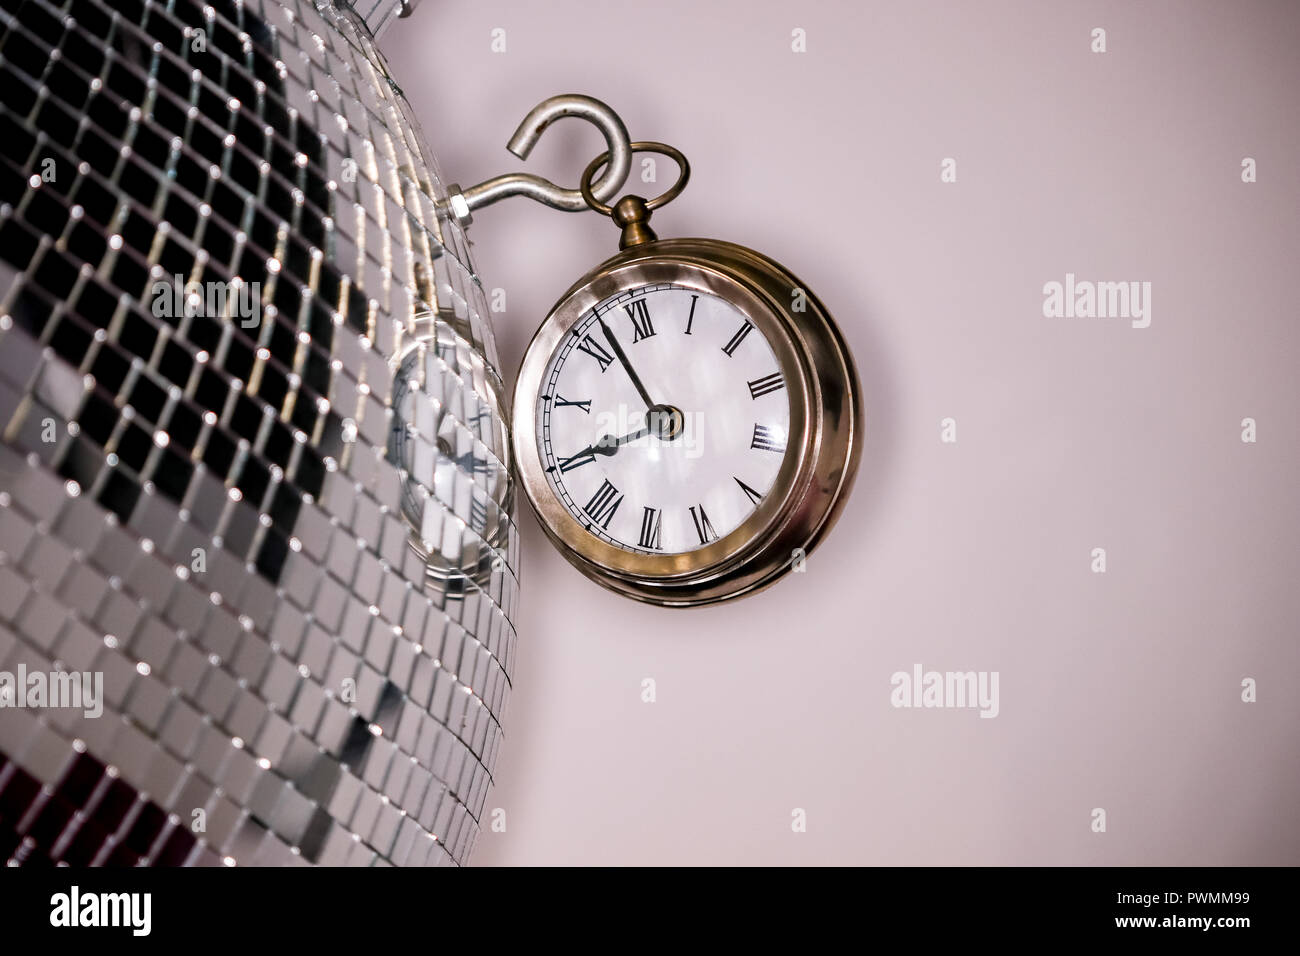 Arty shot of a metal large pocket watch clock next to a silver disco ball - Stock Image